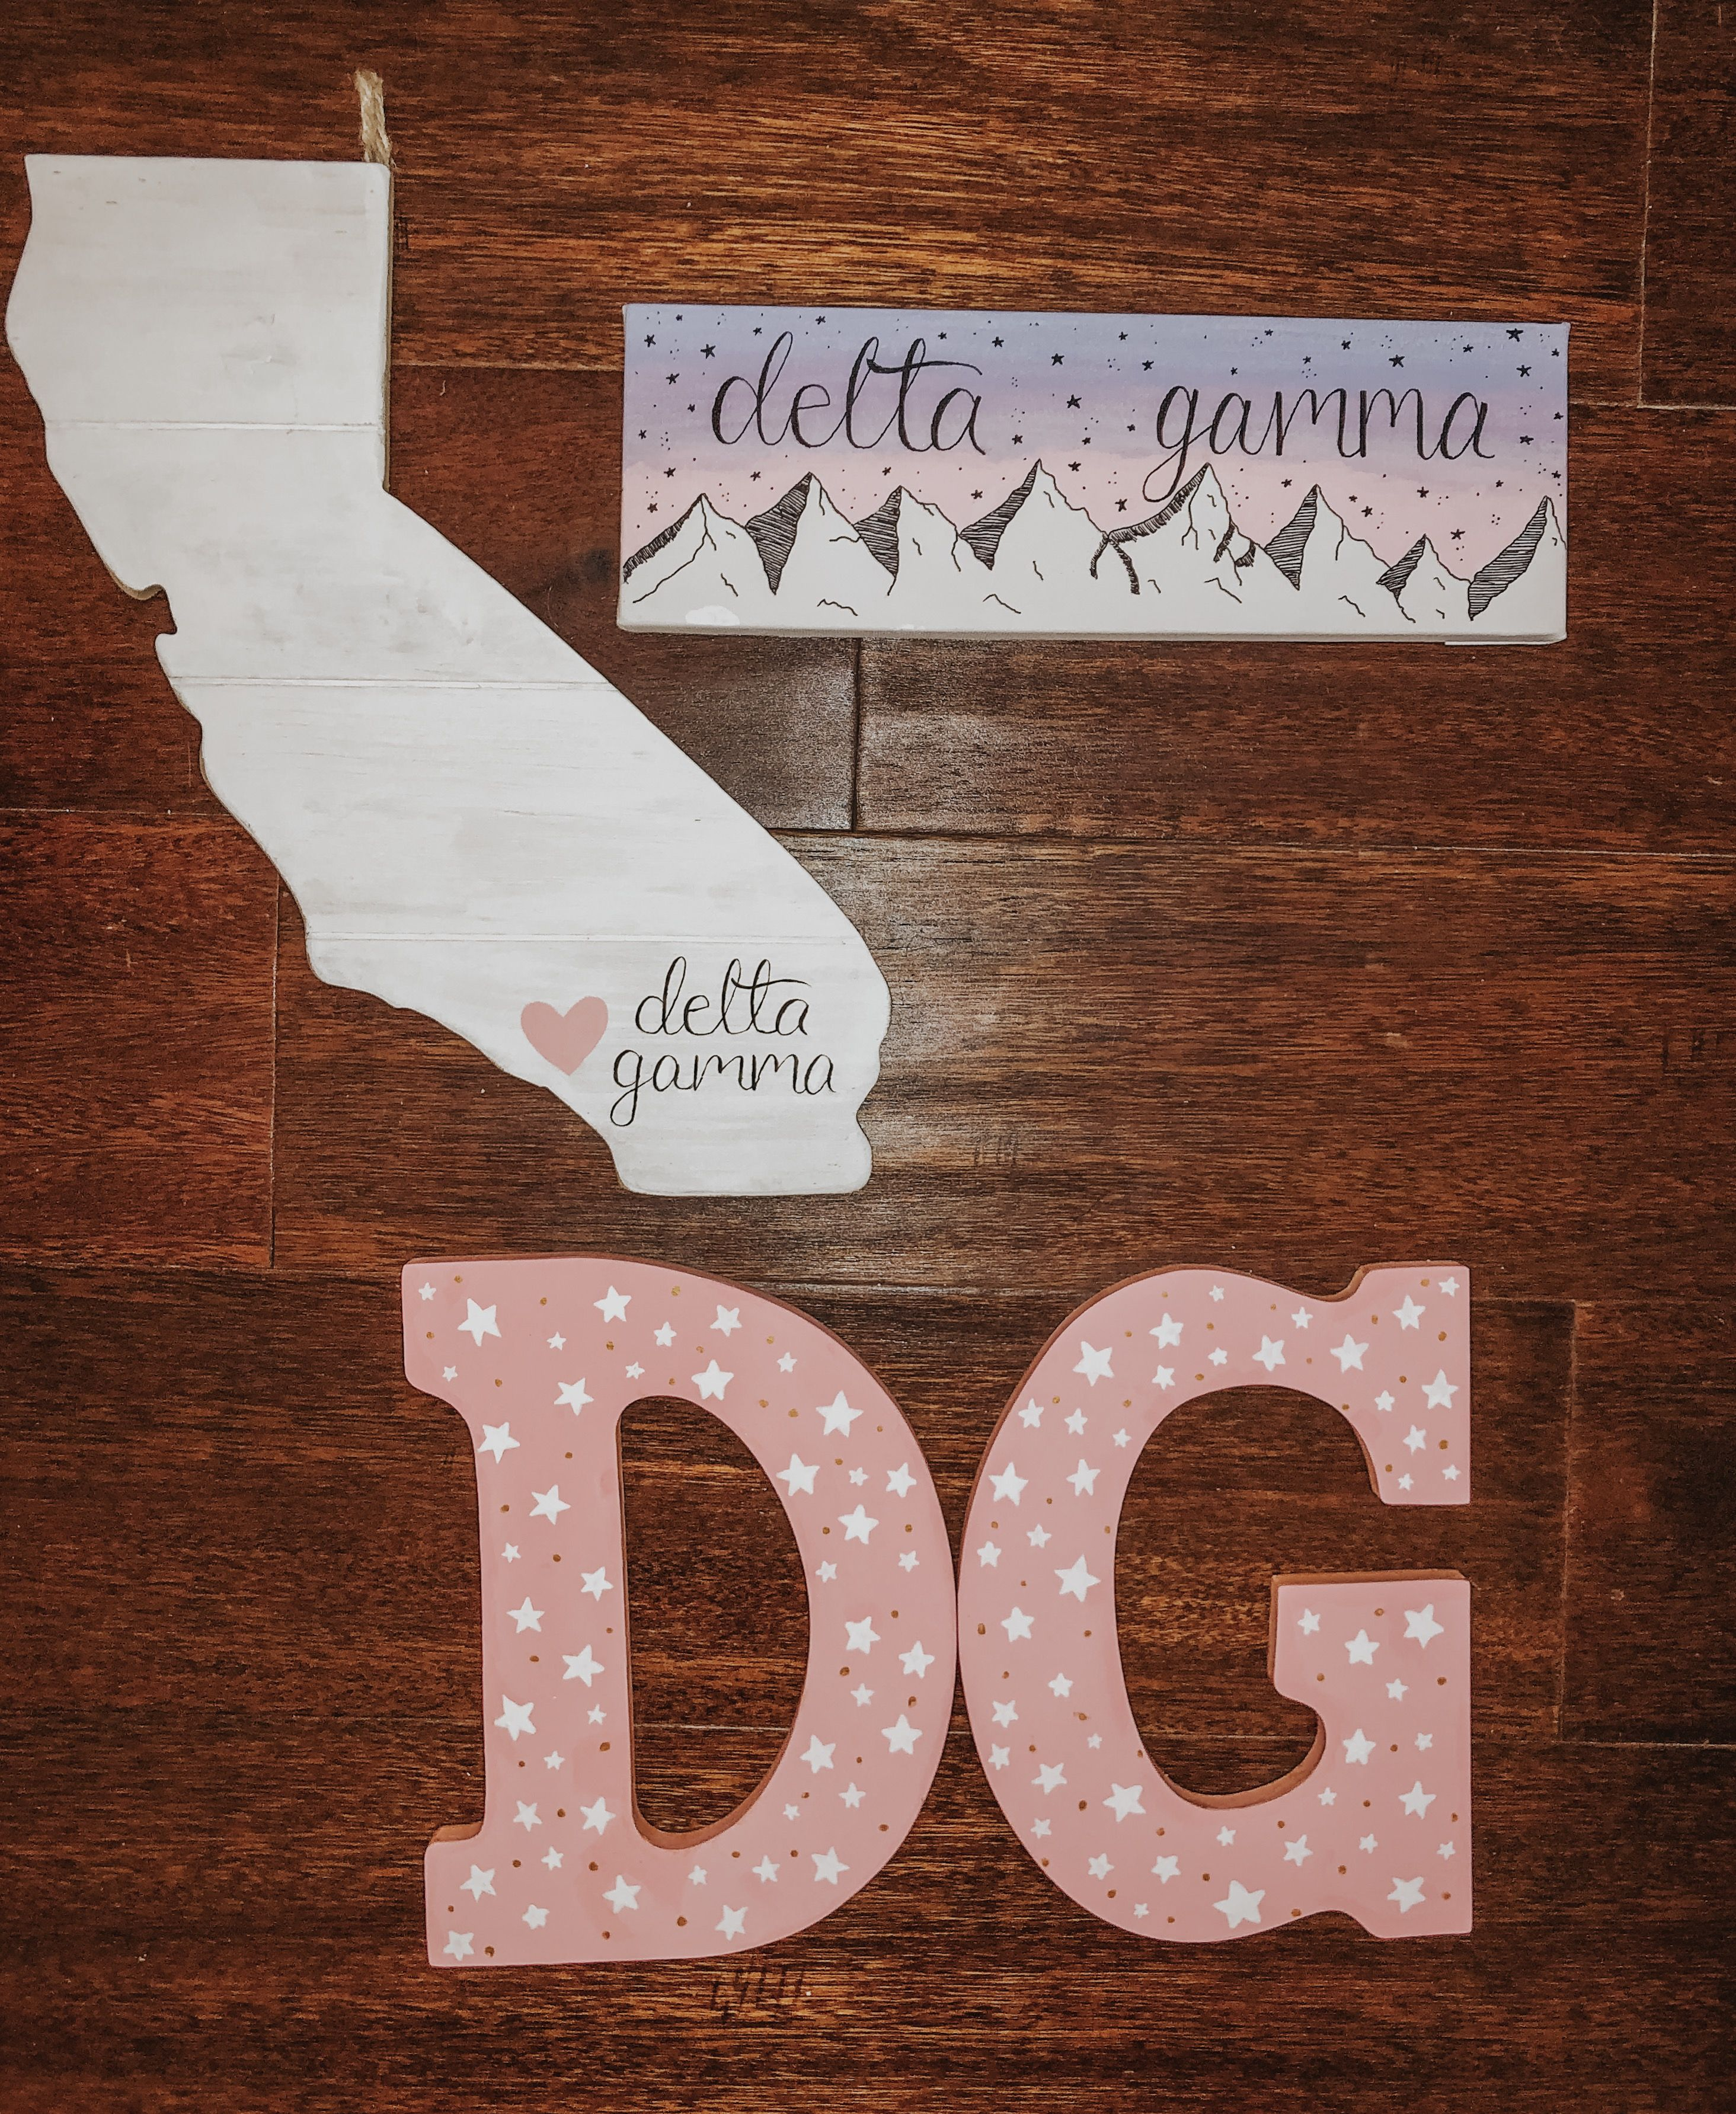 #deltagamma #canvas #mountains #california #painting #sorority #littlecanvas #drawings #letters #sororityletters #biglittlecanvas